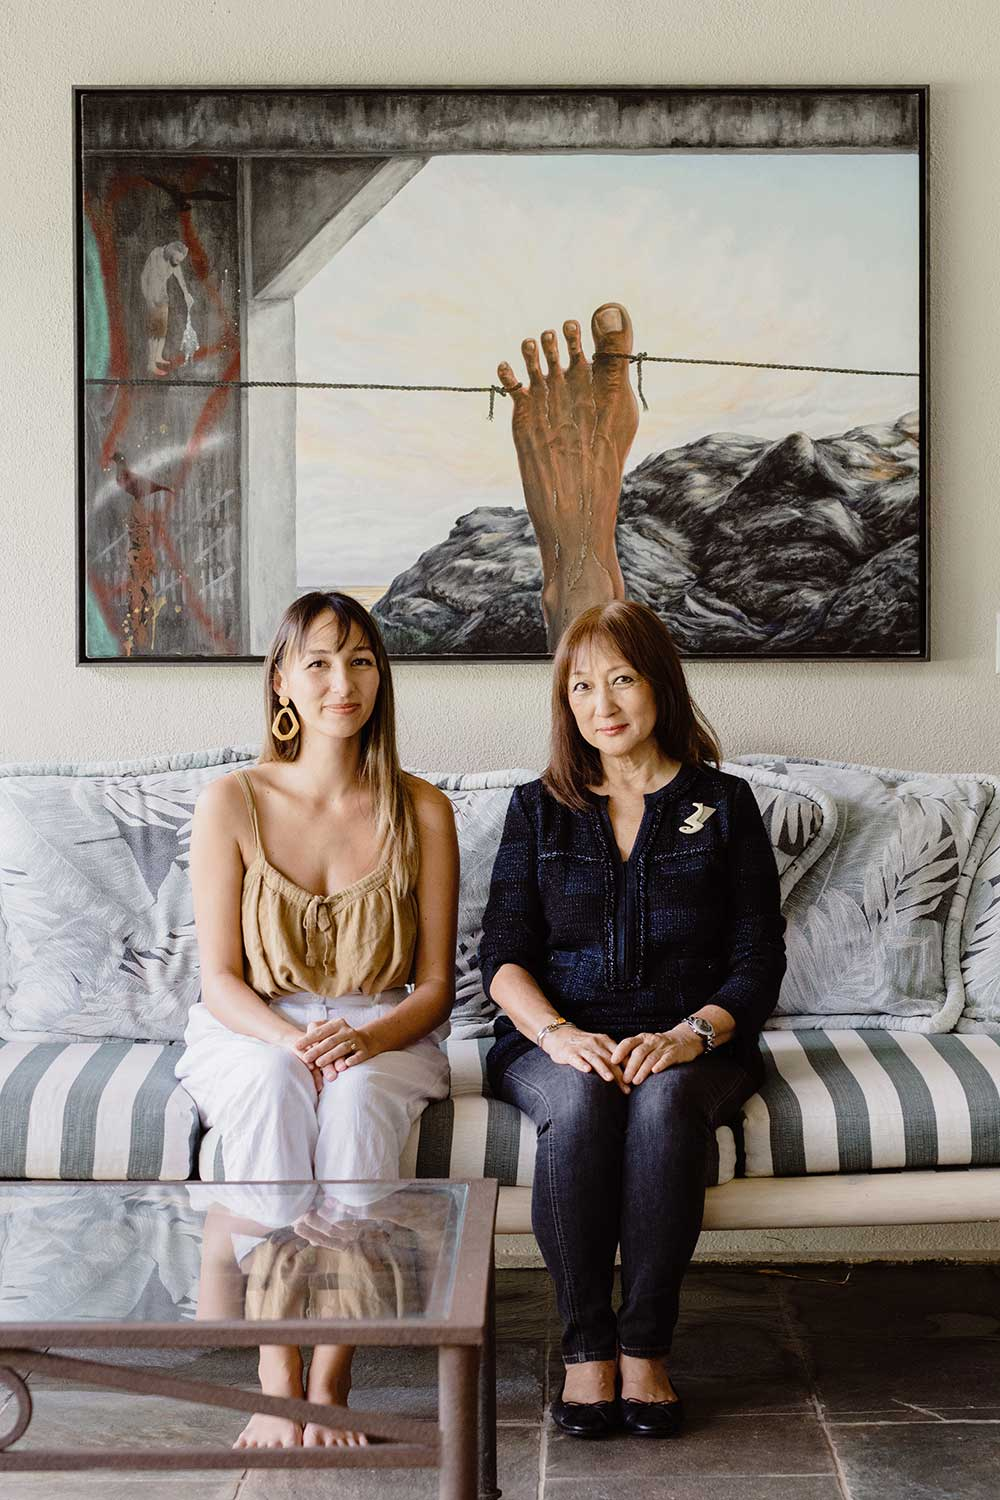 Kenna Reed (left) and Joyce Okano (right)